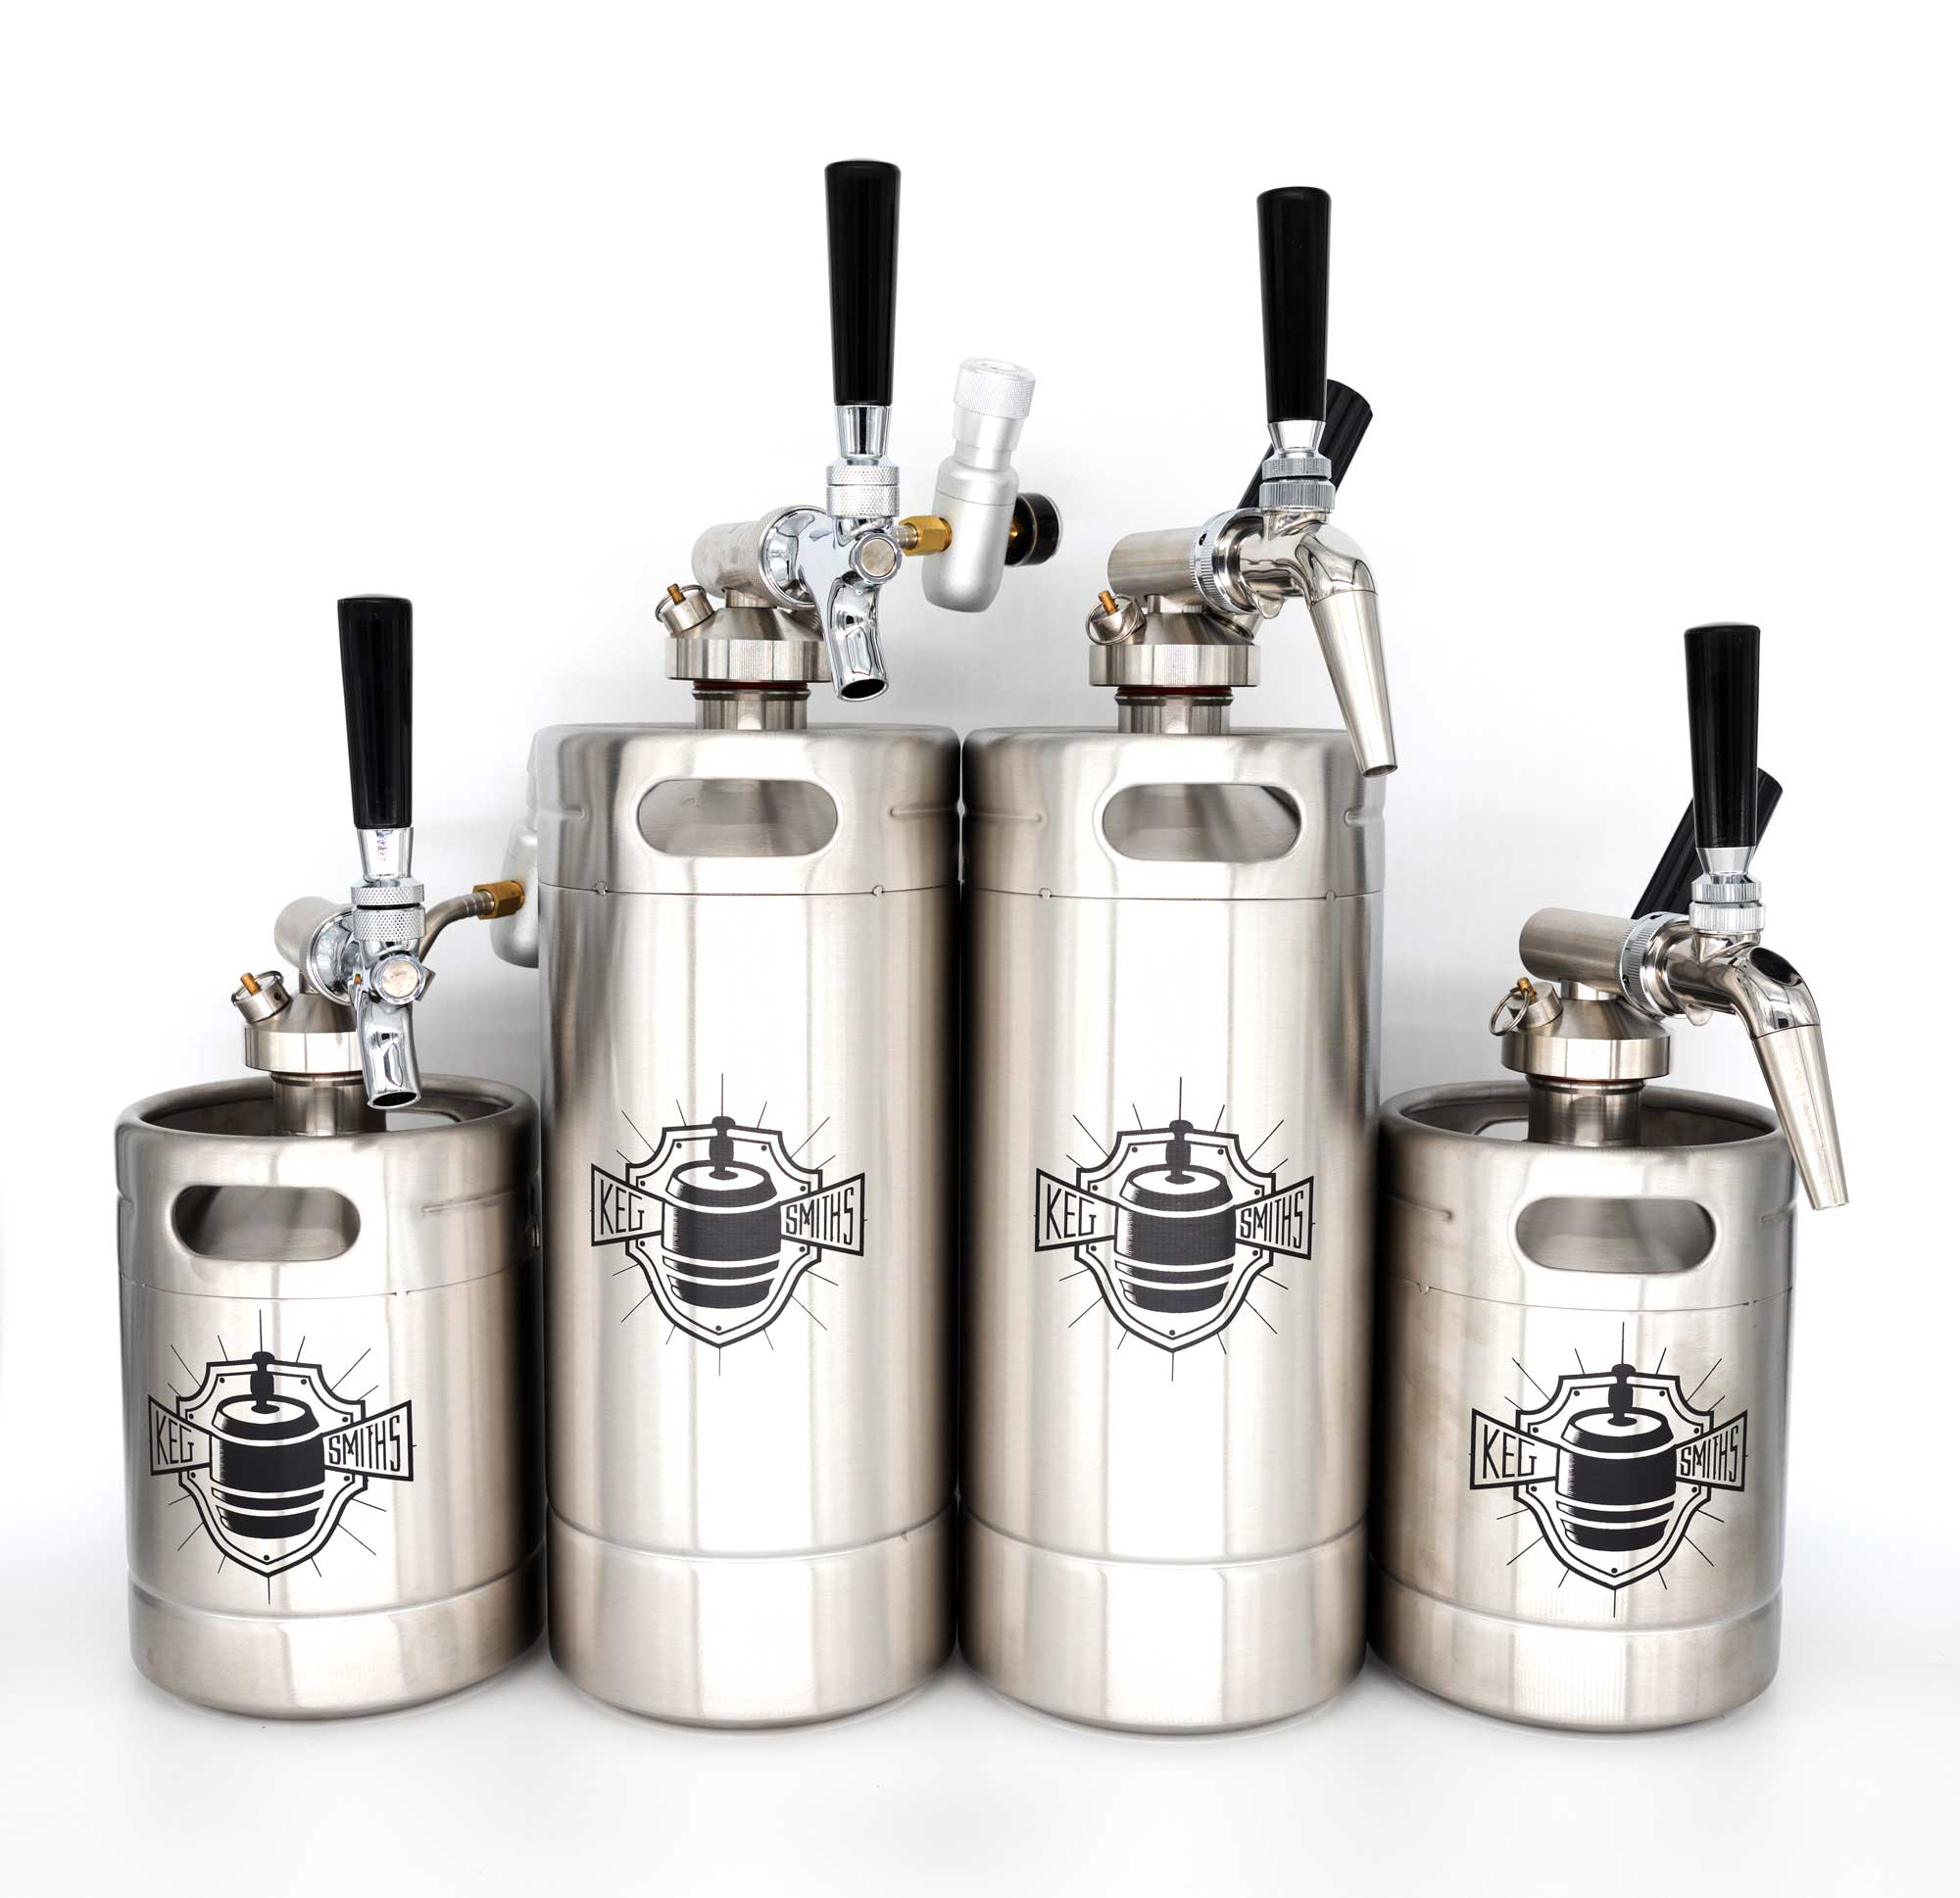 Mini Keg Systems